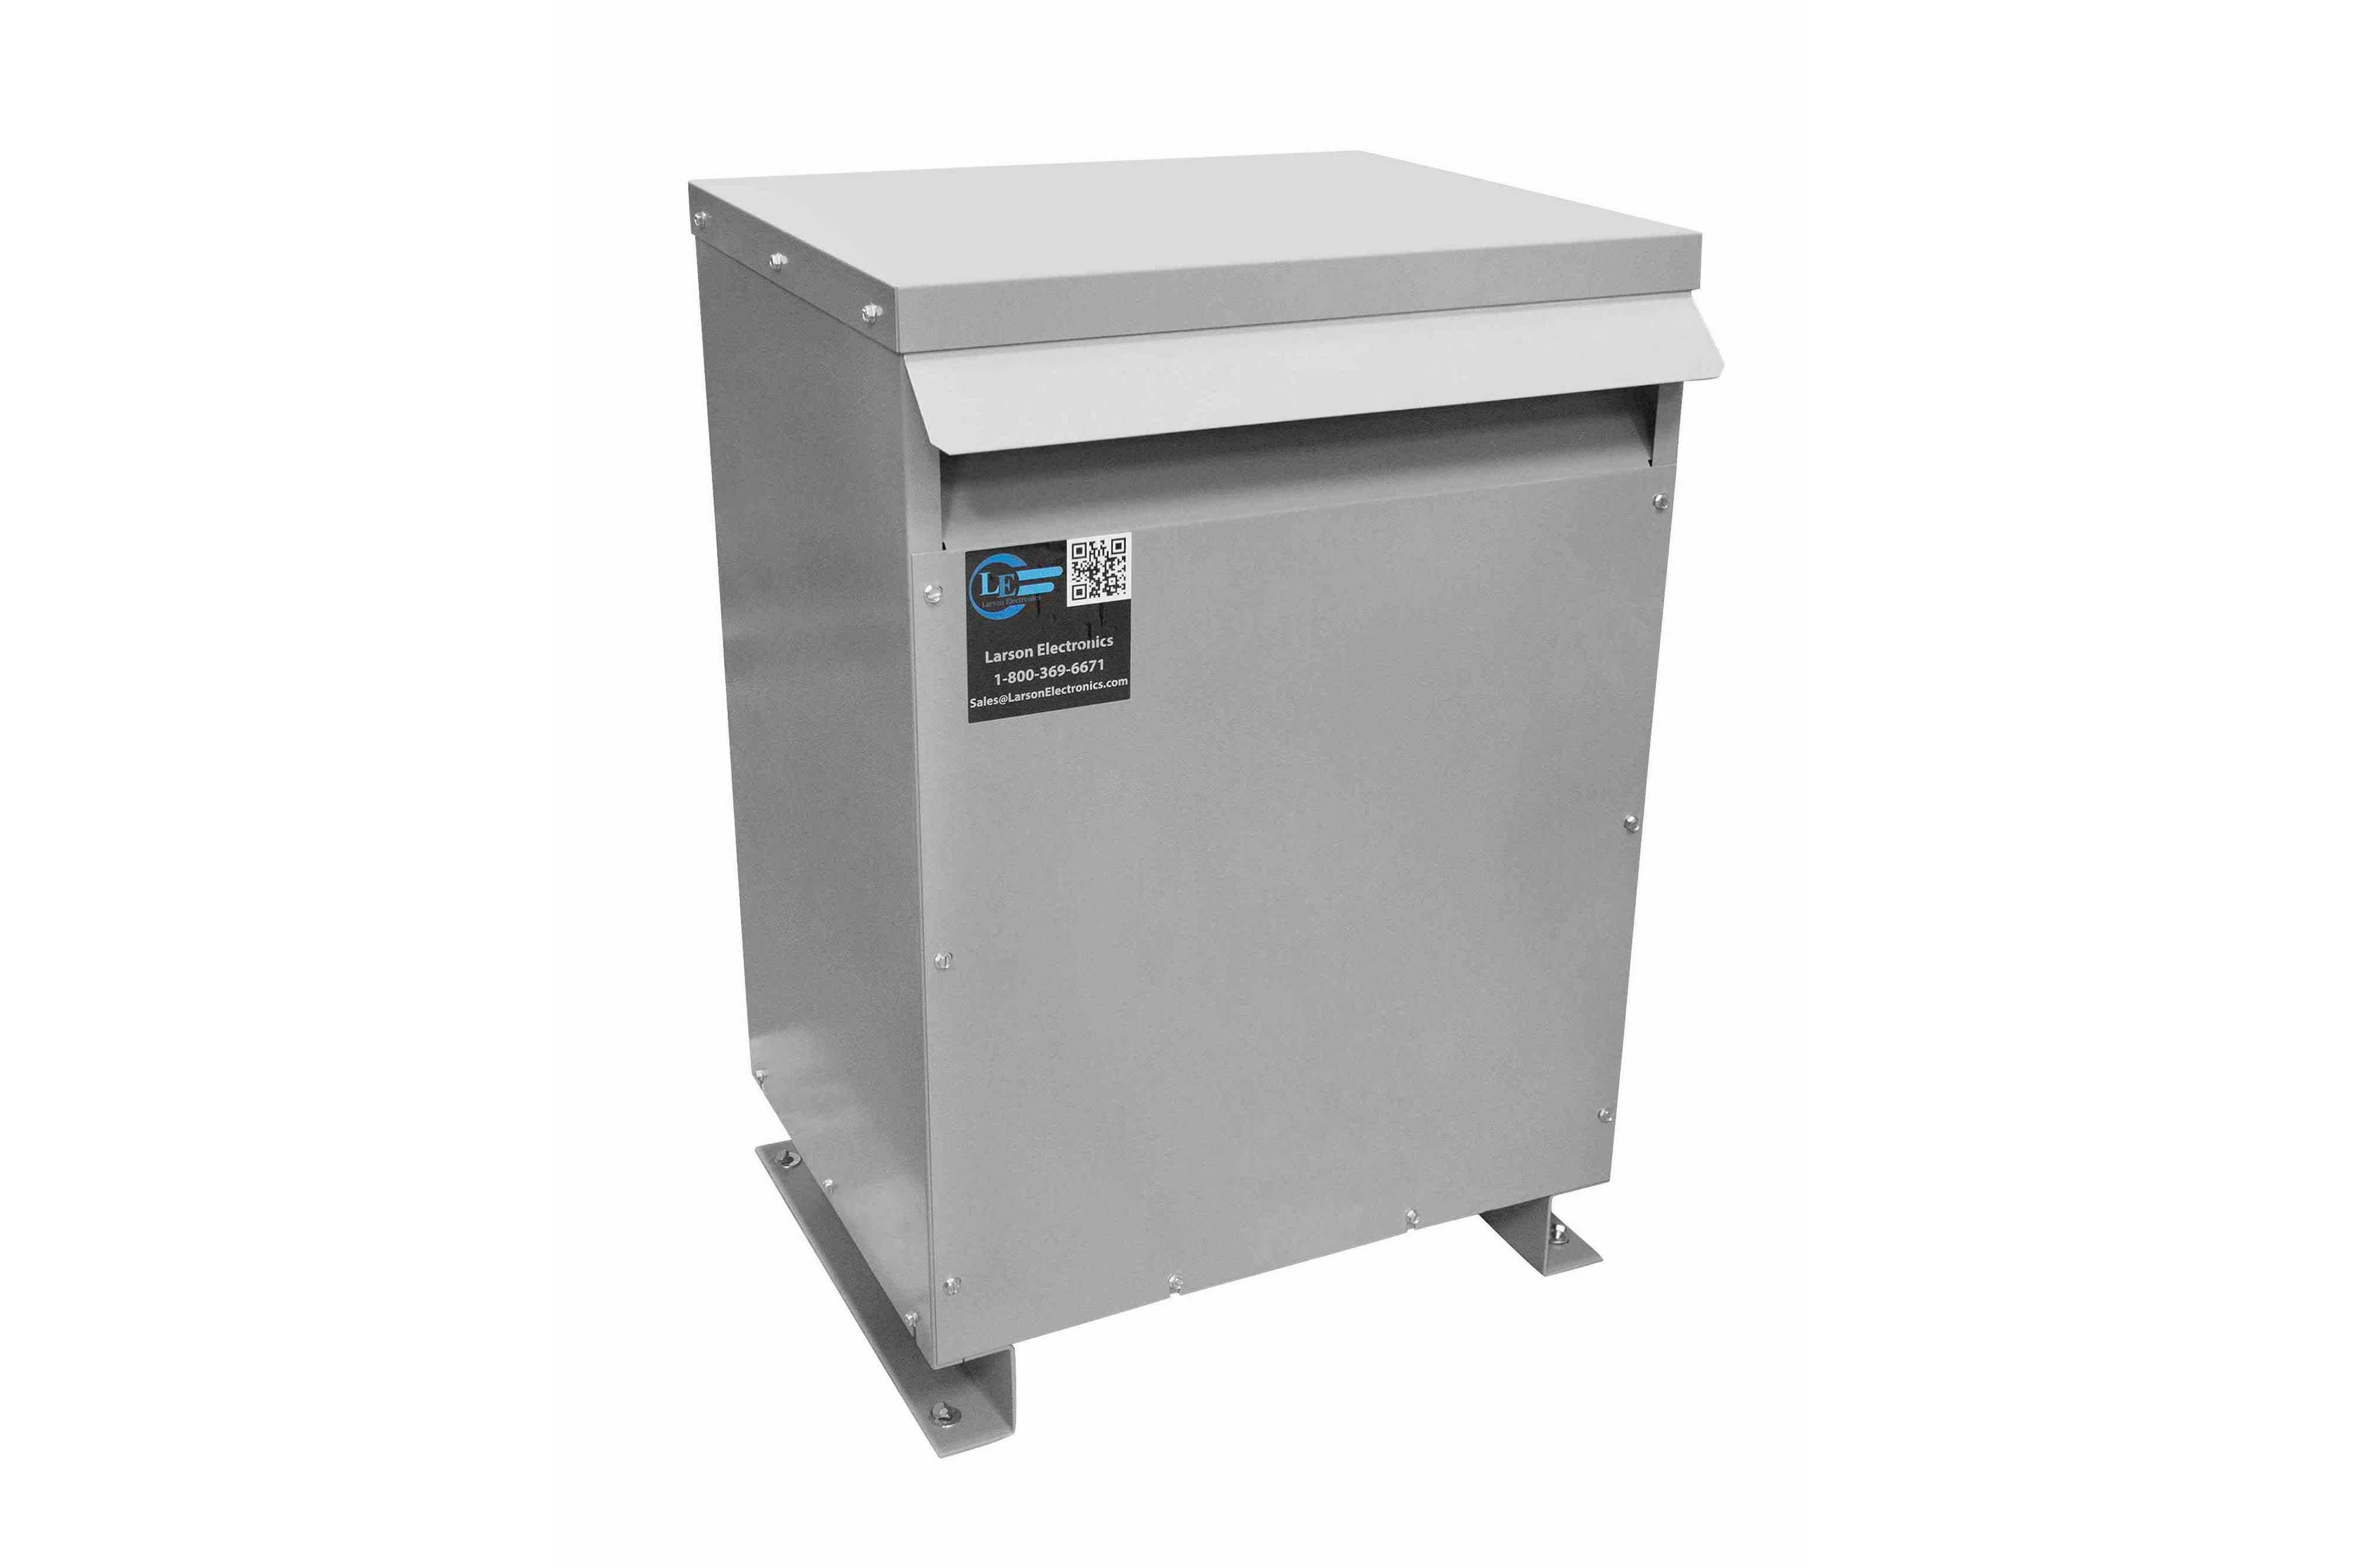 75 kVA 3PH Isolation Transformer, 415V Delta Primary, 480V Delta Secondary, N3R, Ventilated, 60 Hz